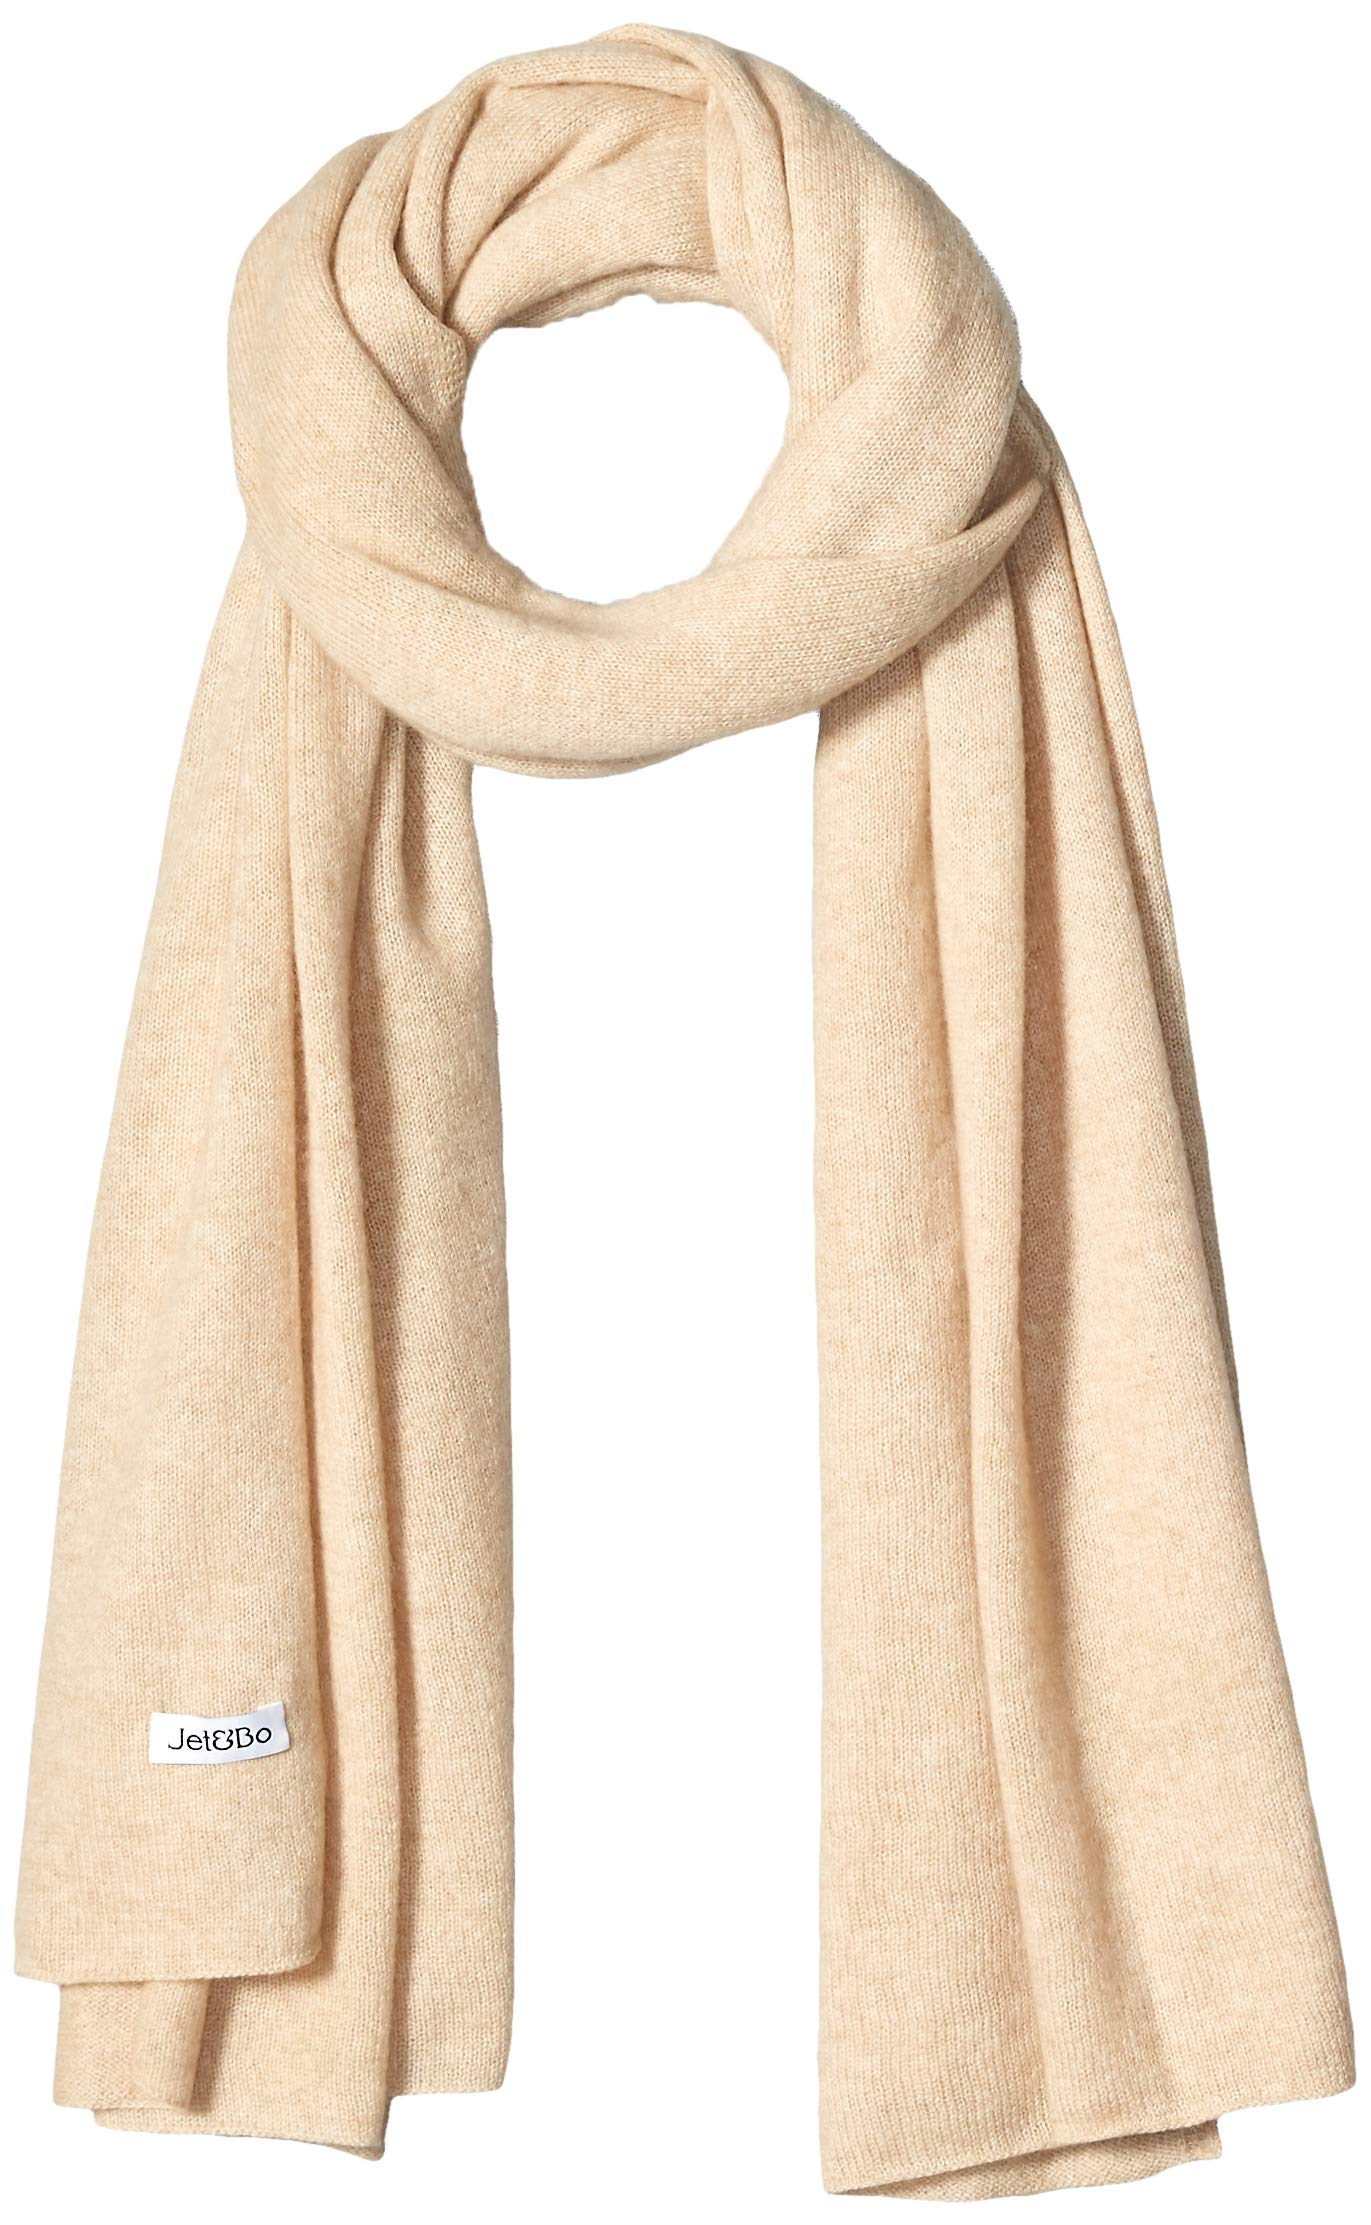 Jet&Bo 100% Pure Cashmere Lightweight Travel Wrap & Scarf Beige 7GG by Jet&Bo (Image #1)